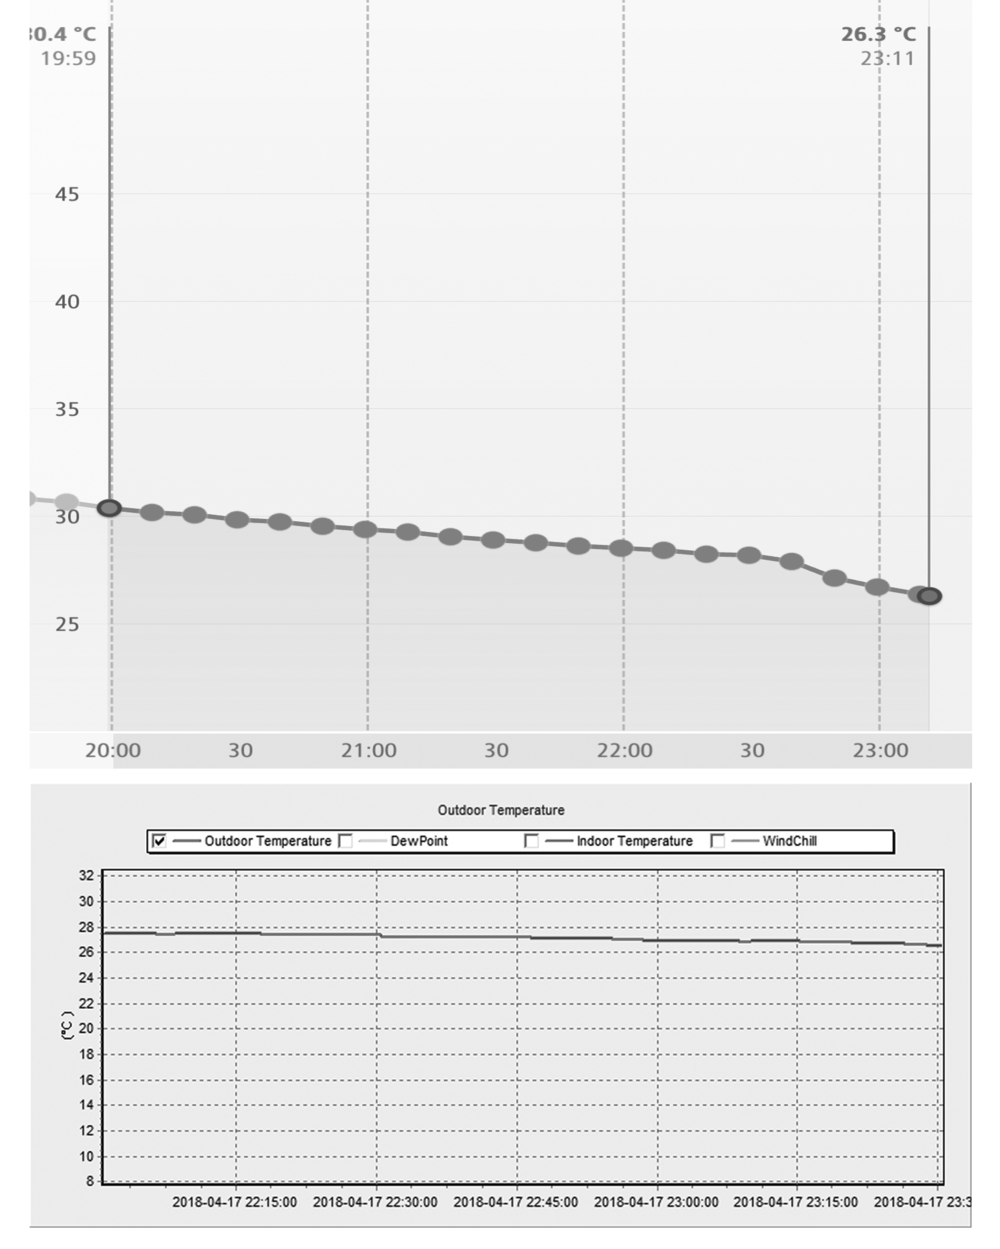 Upper Graph: Inside observatory temperature   Lower Graph: Outside observatory temperature